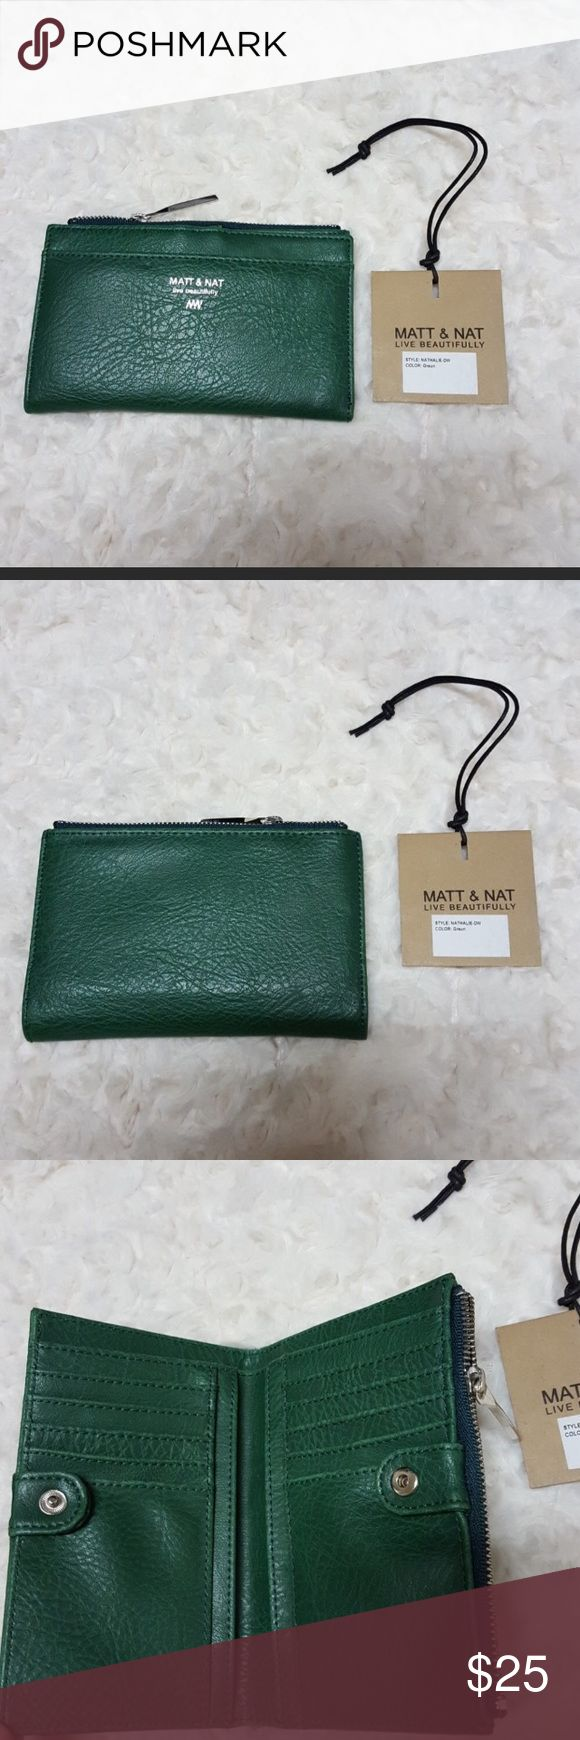 Nathalie Matt and Nat Wallet Beautiful Evergreen Color Matt and Nat wallet! I just purchased new on Posh, but it's slightly bigger than what I was hoping for. Beautiful quality, and as usual- gorgeous coloring ! Price is firm, I'm only asking what i paid :) Matt and Nat Bags Wallets